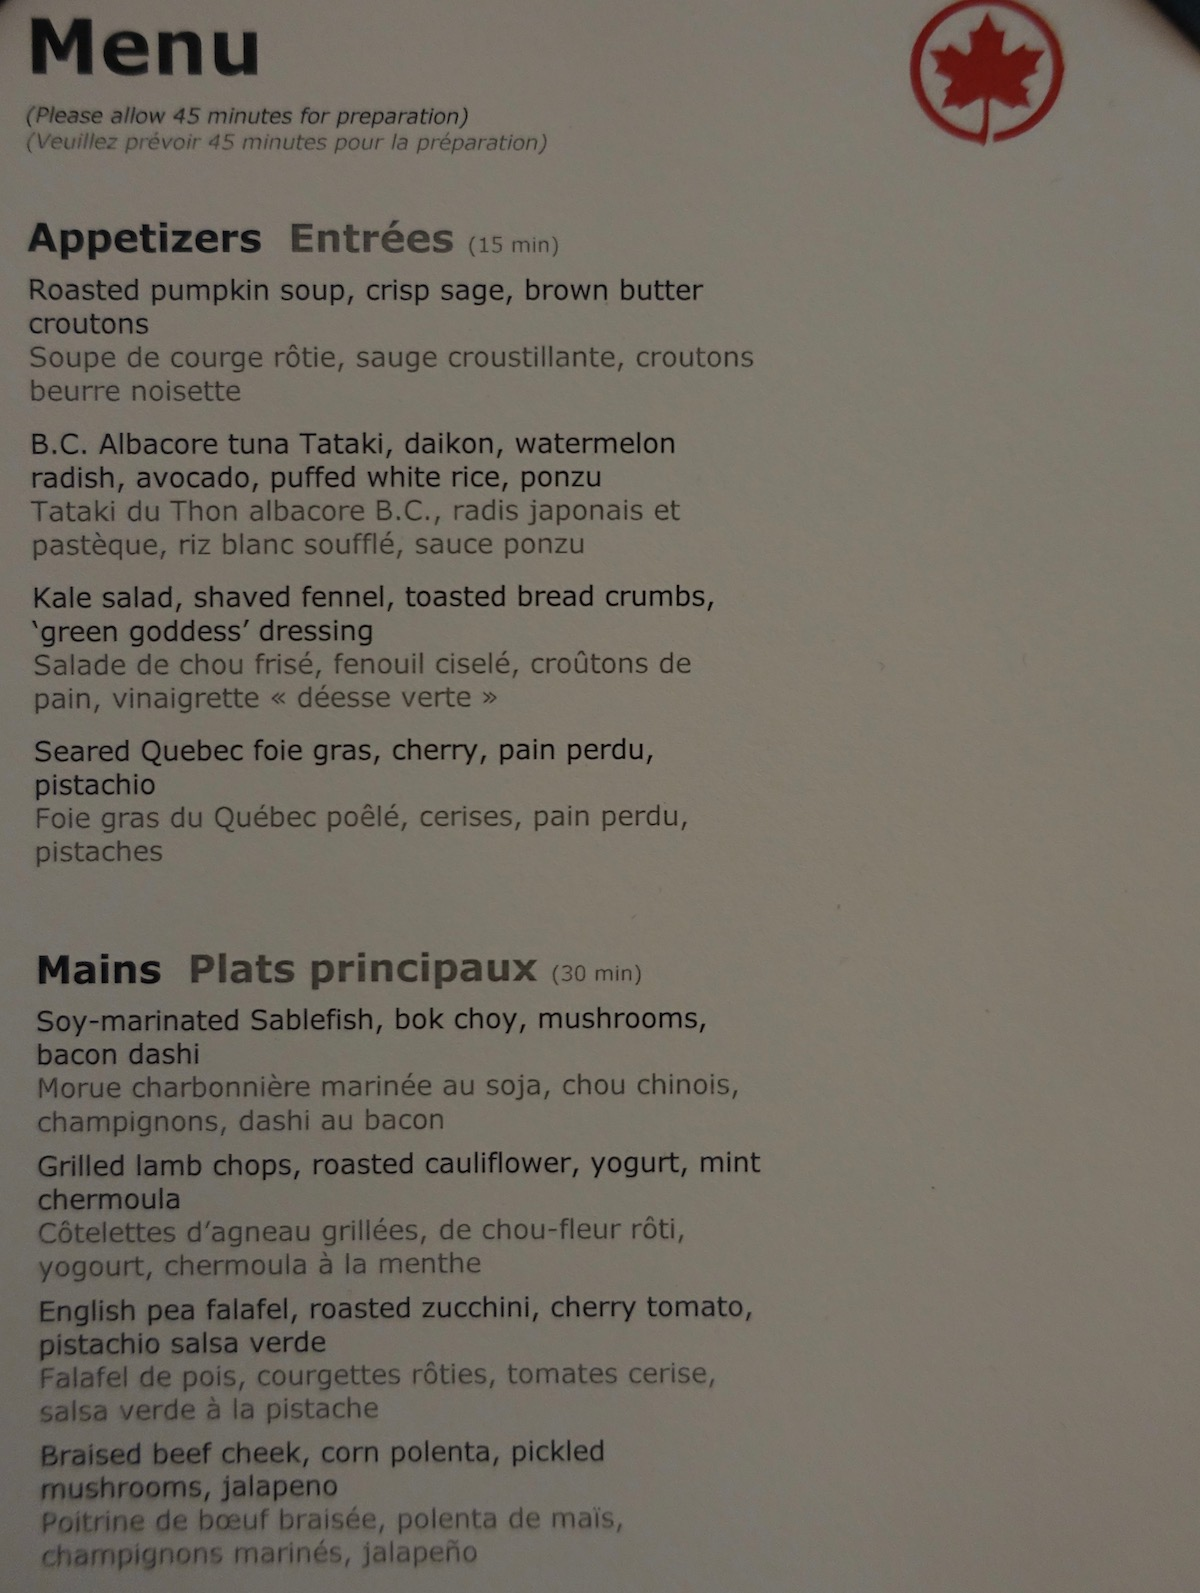 A La Carte Dining Featuring David Hawksworth Dishes The Main Menu Read As Follows You Can See Prep Times Range Between 15 And 30 Minutes